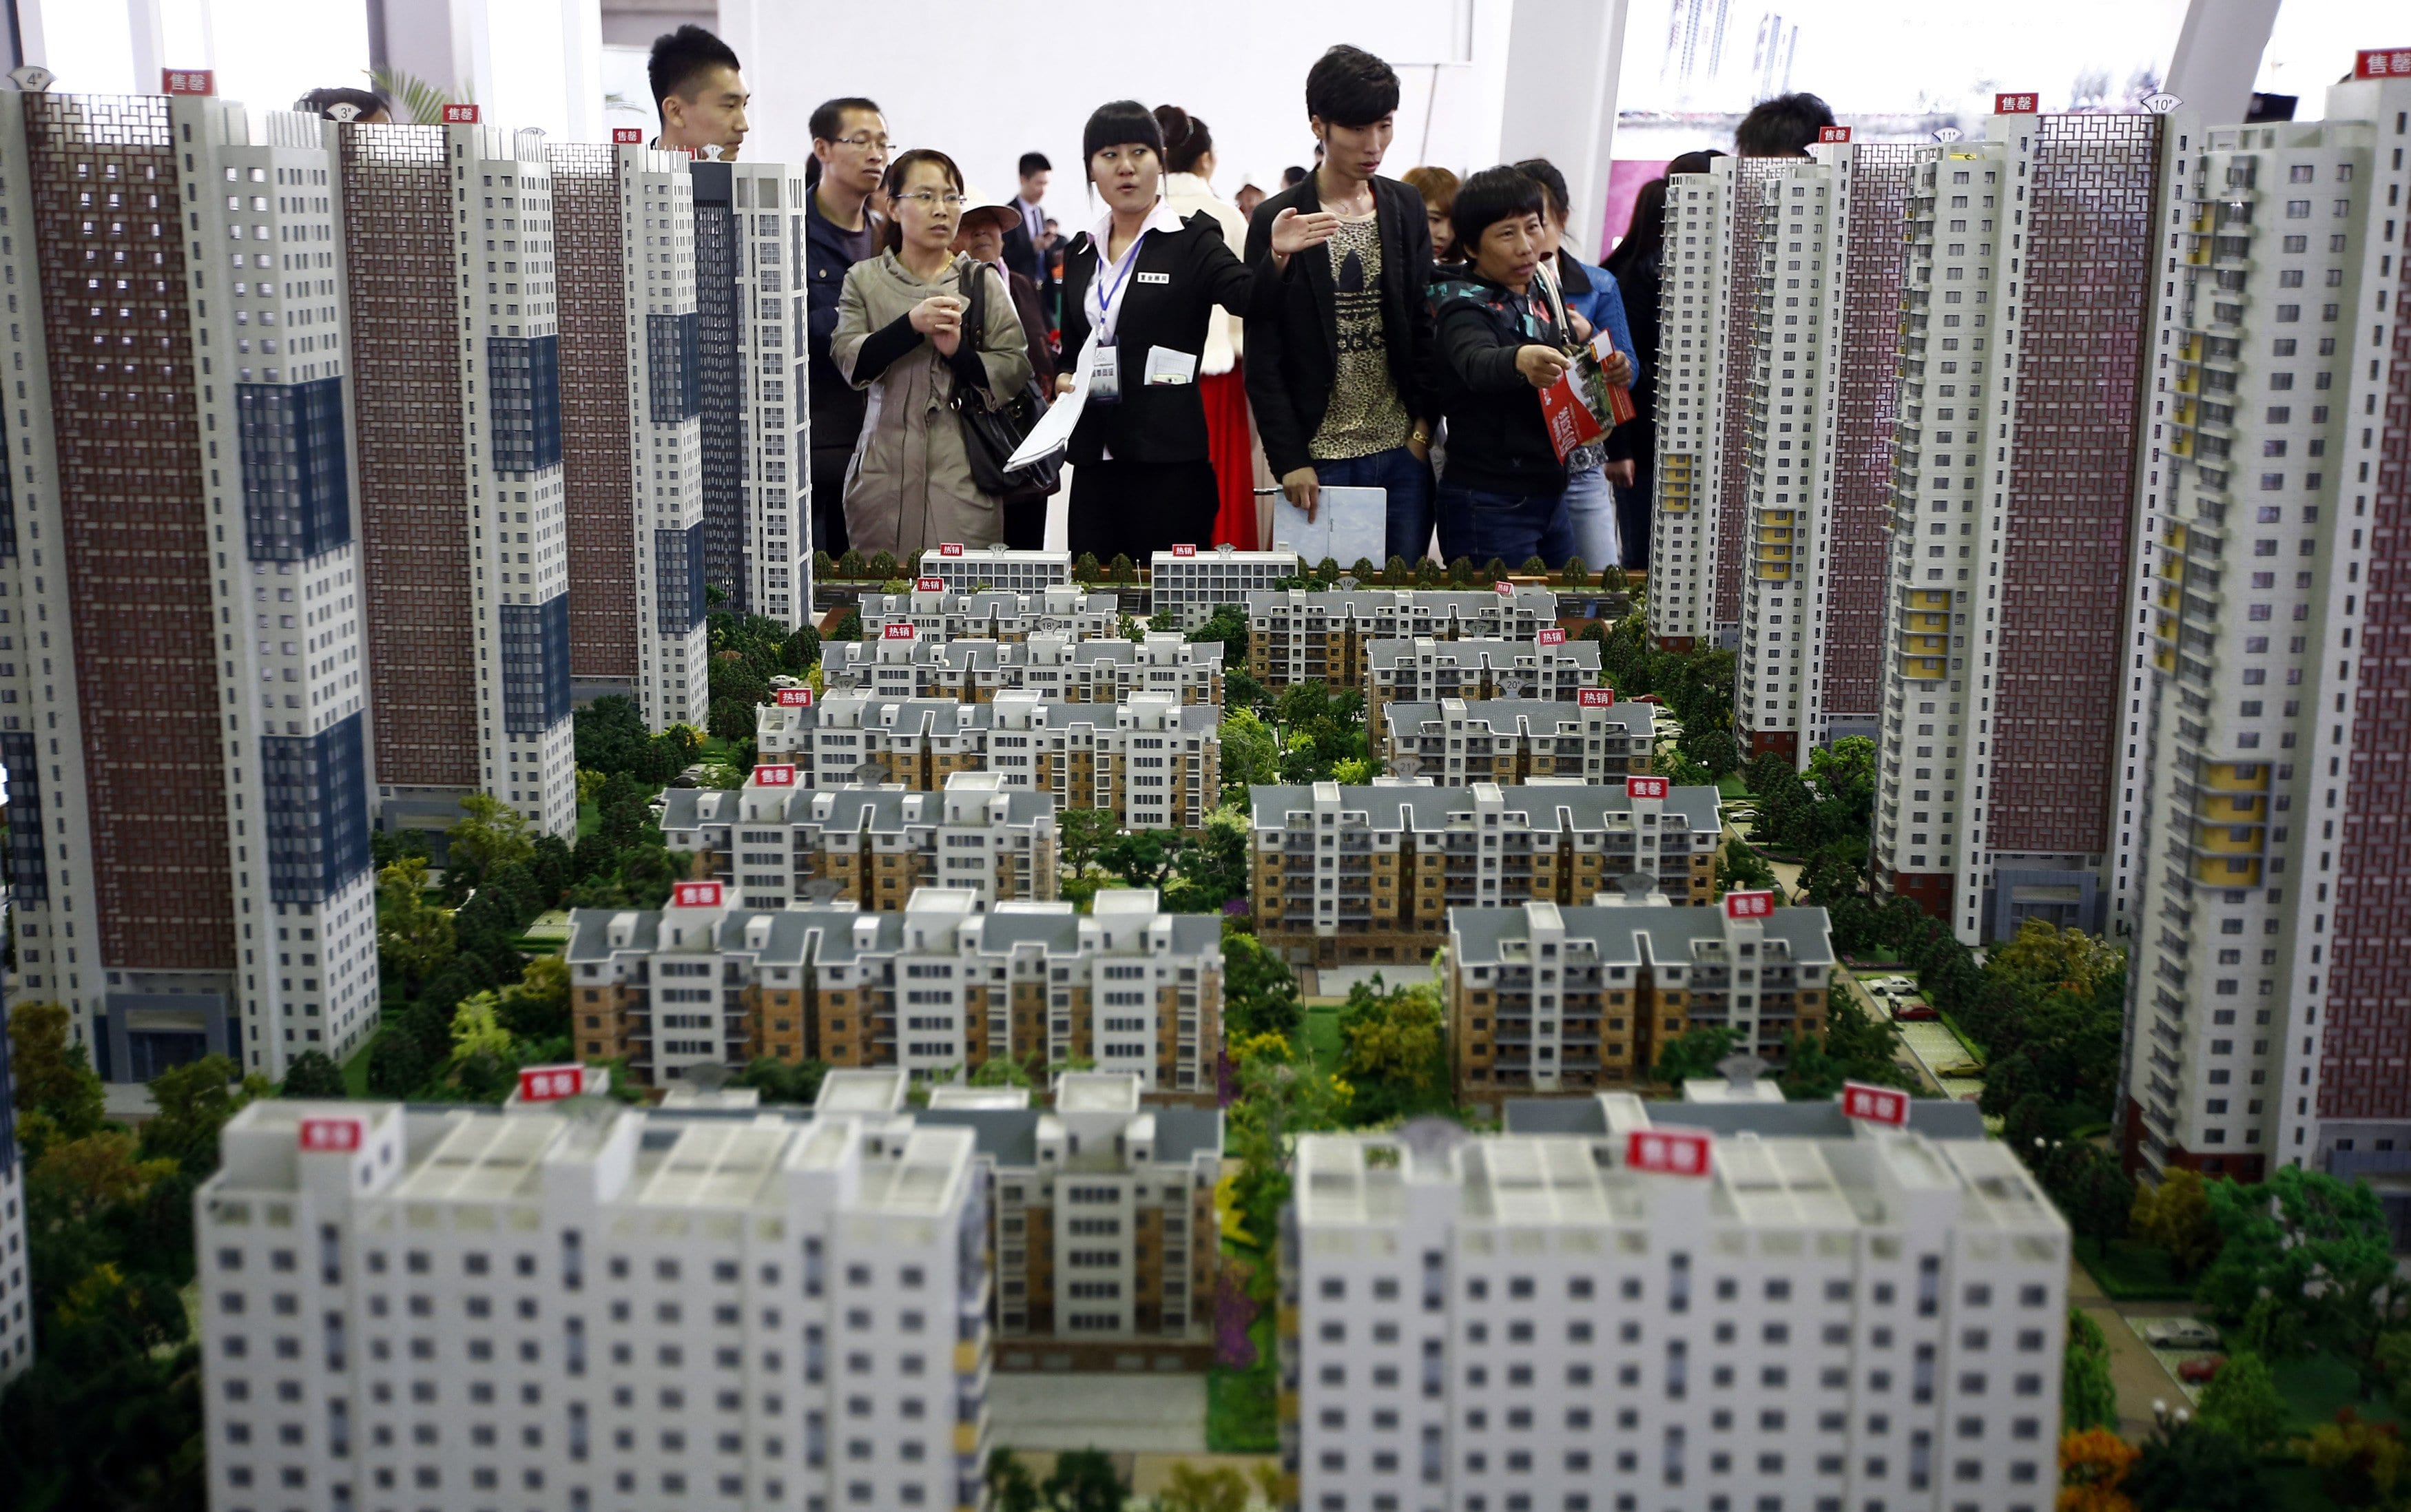 Image A sales assistant talks to visitors in front of models of apartments at a real estate exhibition in Shenyang, Liaoning province April 17, 2014. [Sheng Li—Reuters]